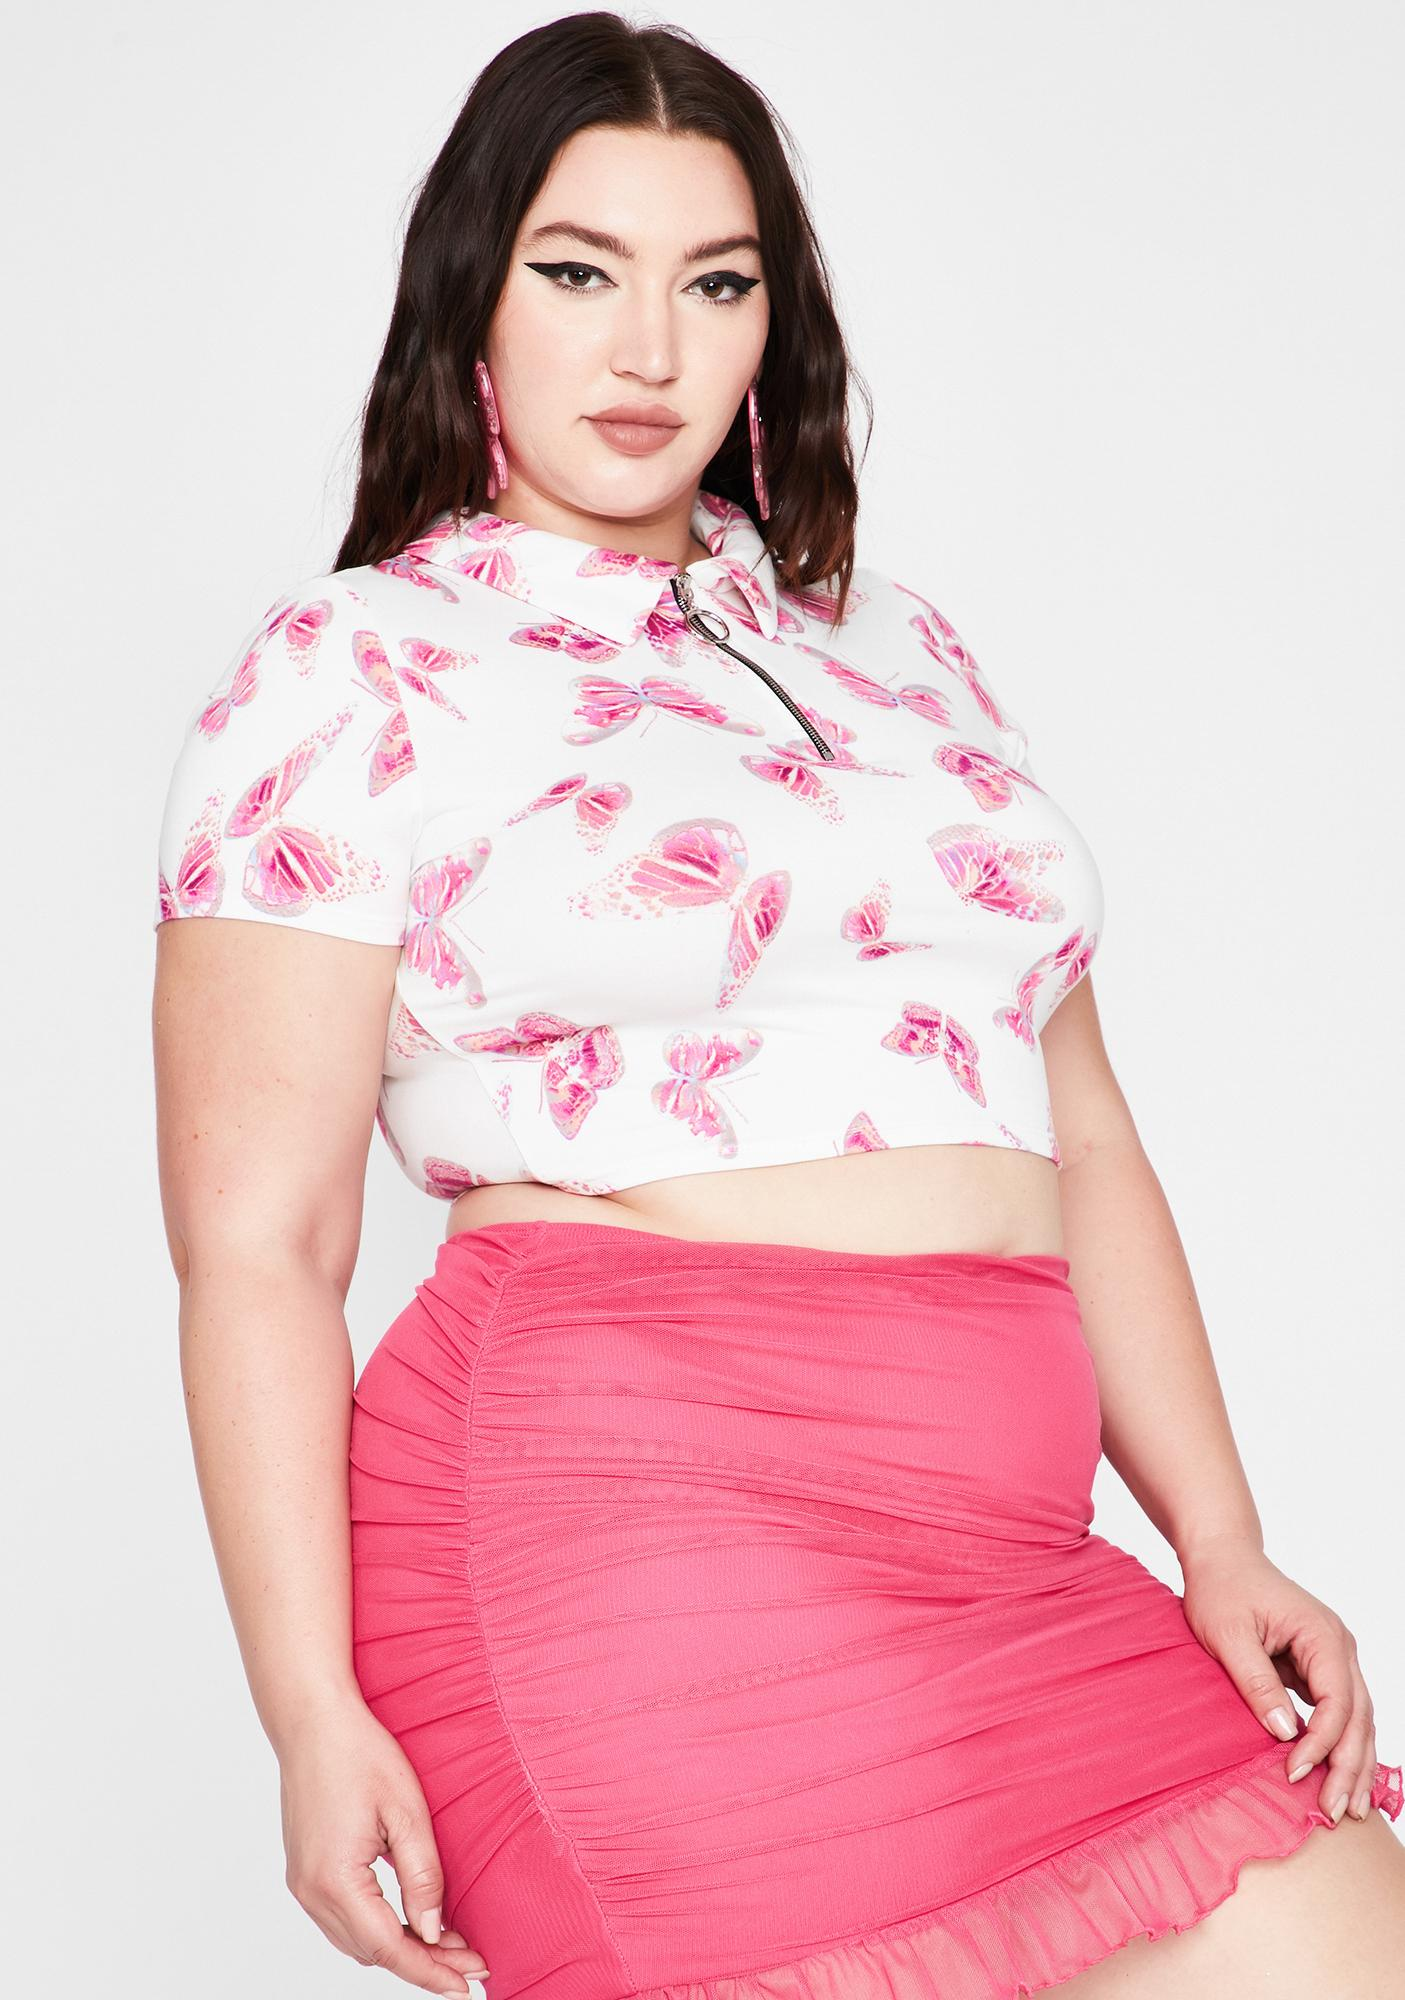 Her Sweet Daydreams Crop Top